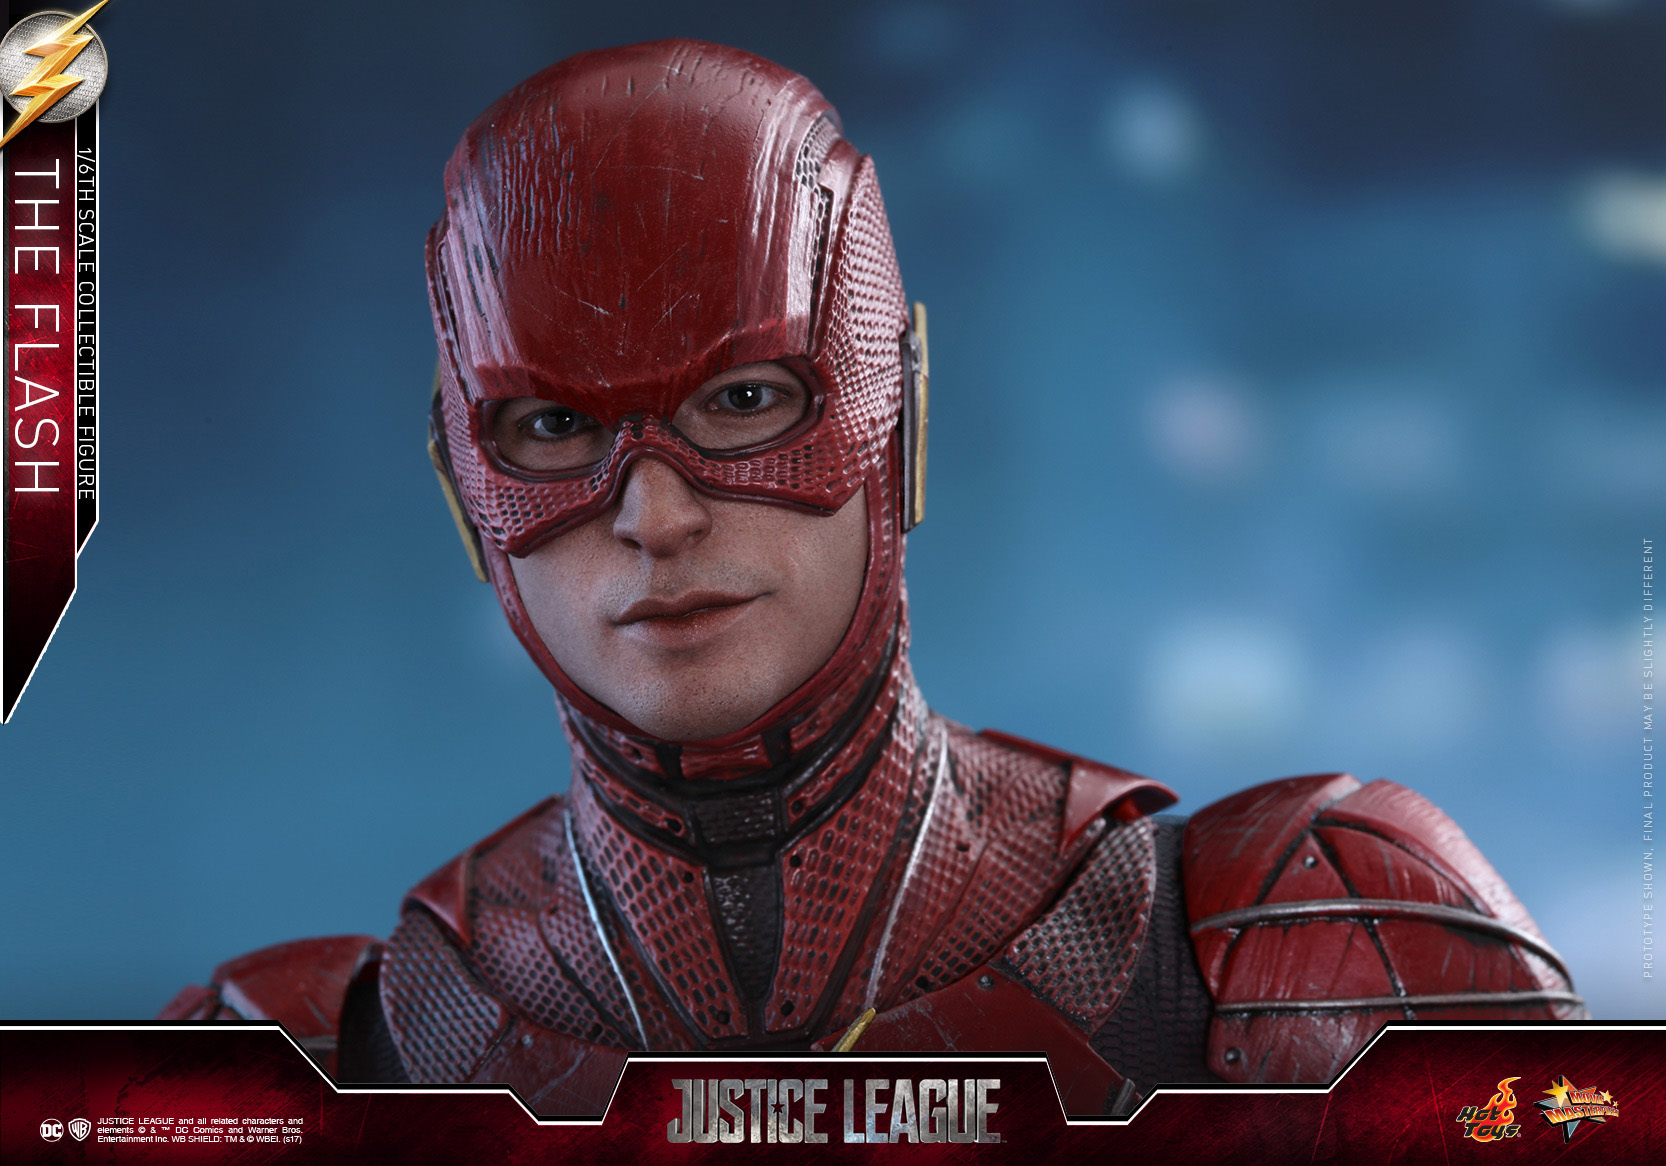 Hot Toys - Justice League - The Flash Collectible Figure_PR19.jpg